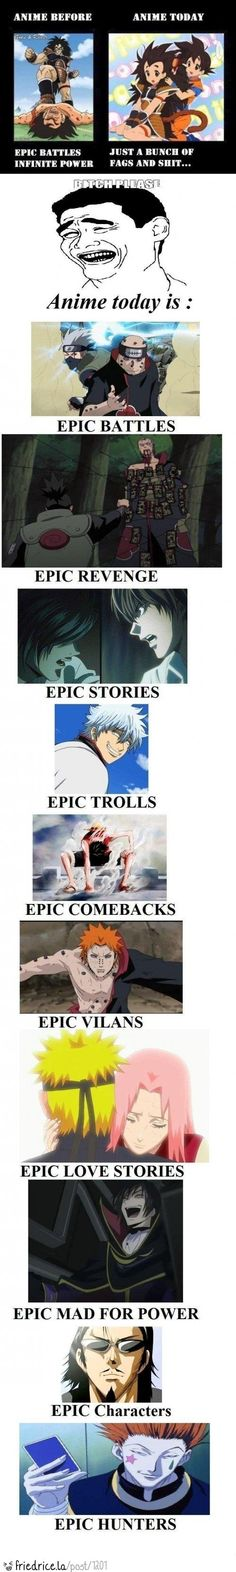 Wait naruto and sakura is epic love story seriously?!?! This have to be a joke. Im just pinning this cause im mad.